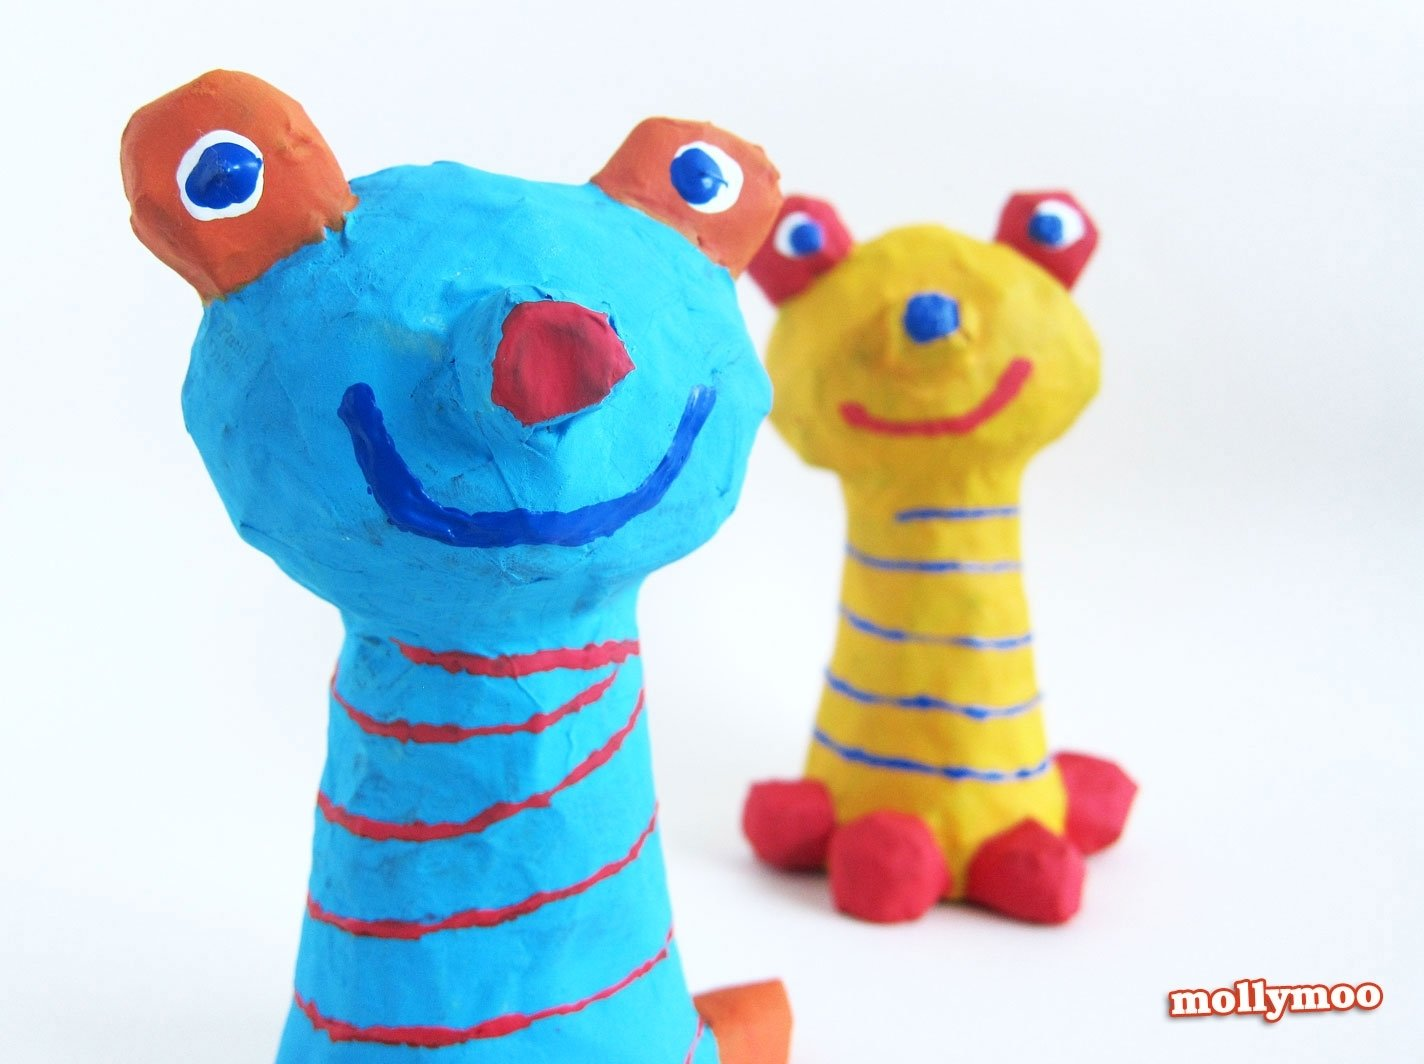 10 Lovable Paper Mache Ideas For Kids mollymoocrafts papier mache crafts for kids frog to inspire play 2021